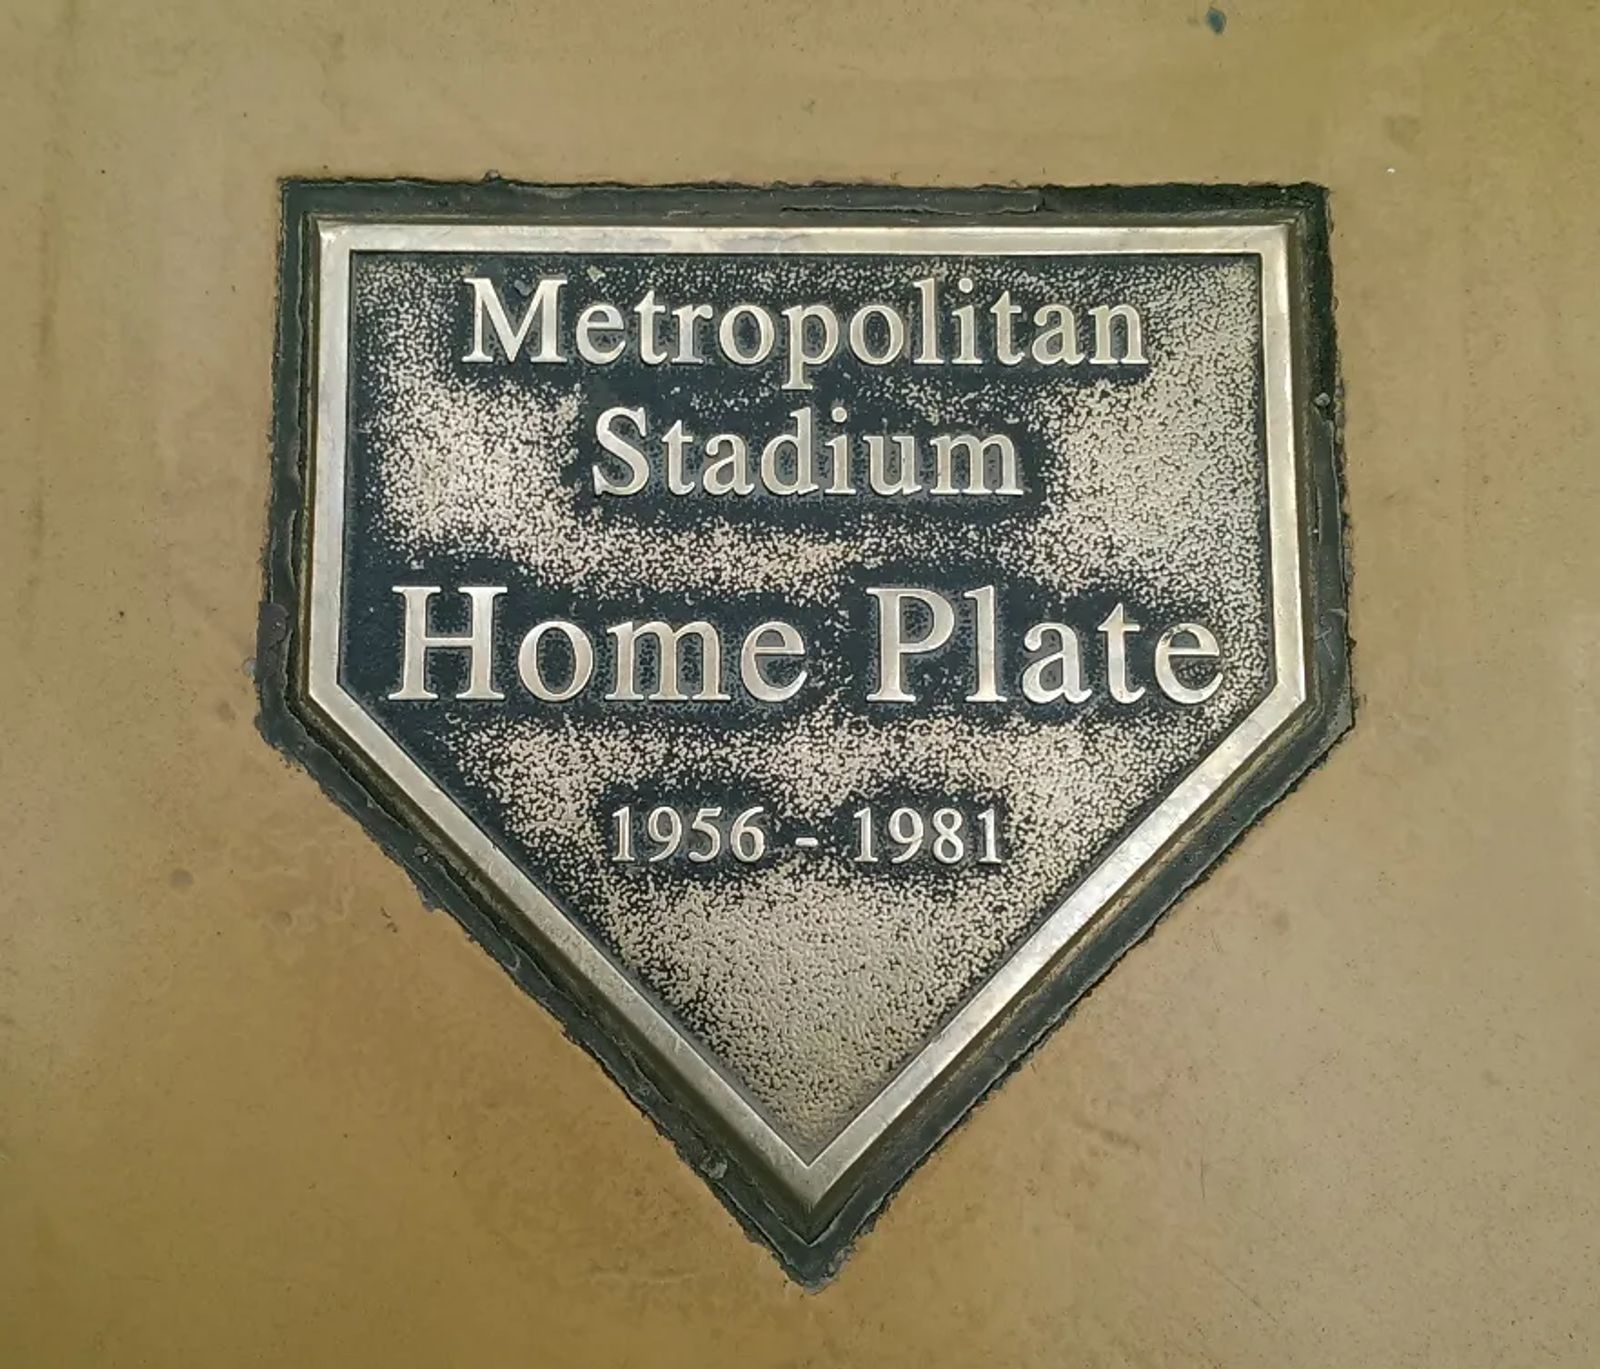 Photo of the old Metropolitan Stadium home plate, in Bloomington, Minnesota